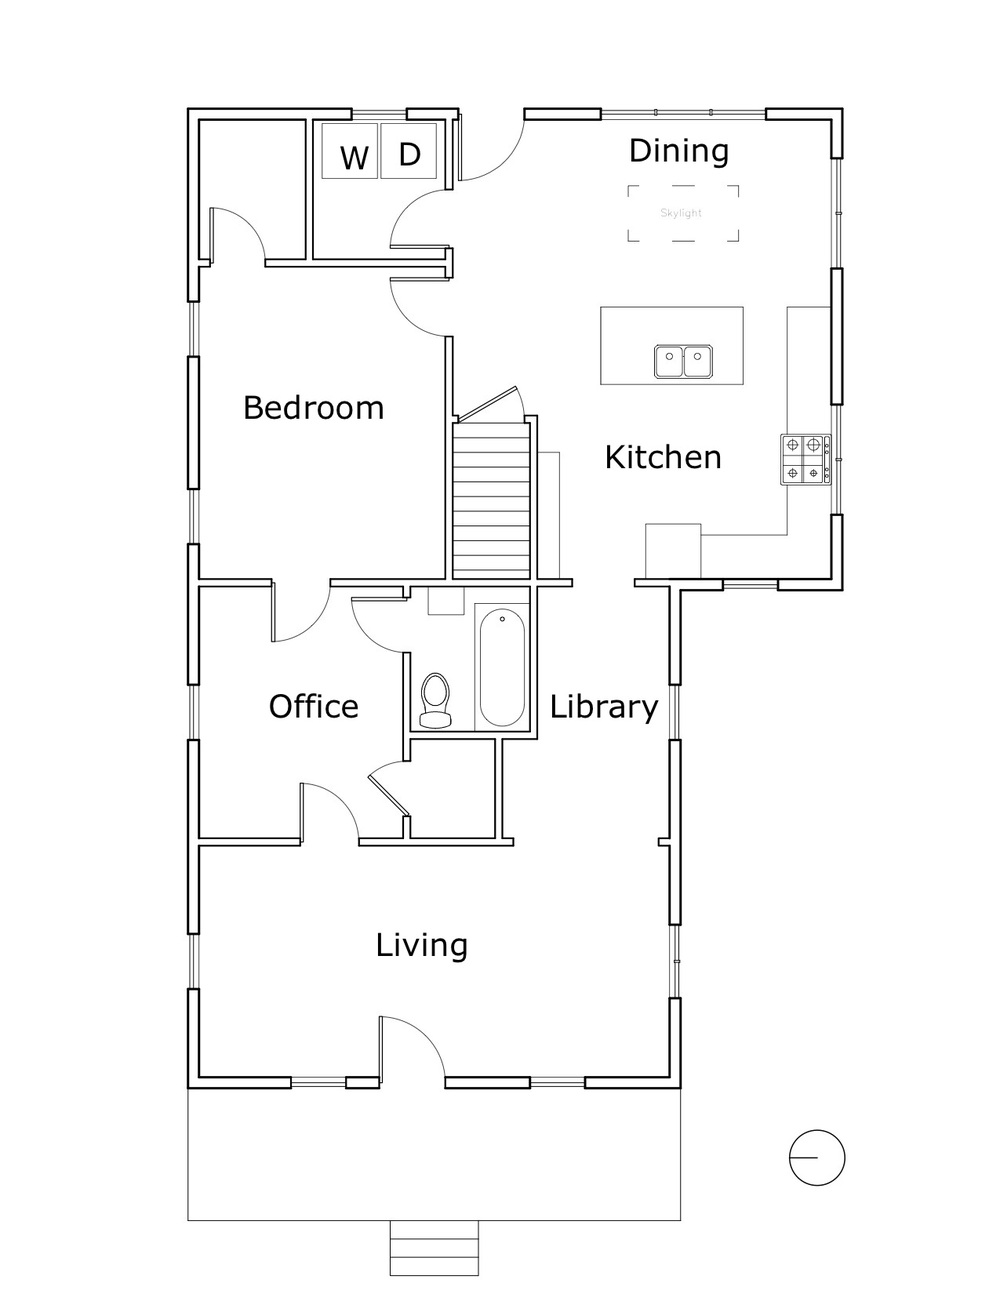 215 Hardy Ave - Schematic Floor Plan.jpg